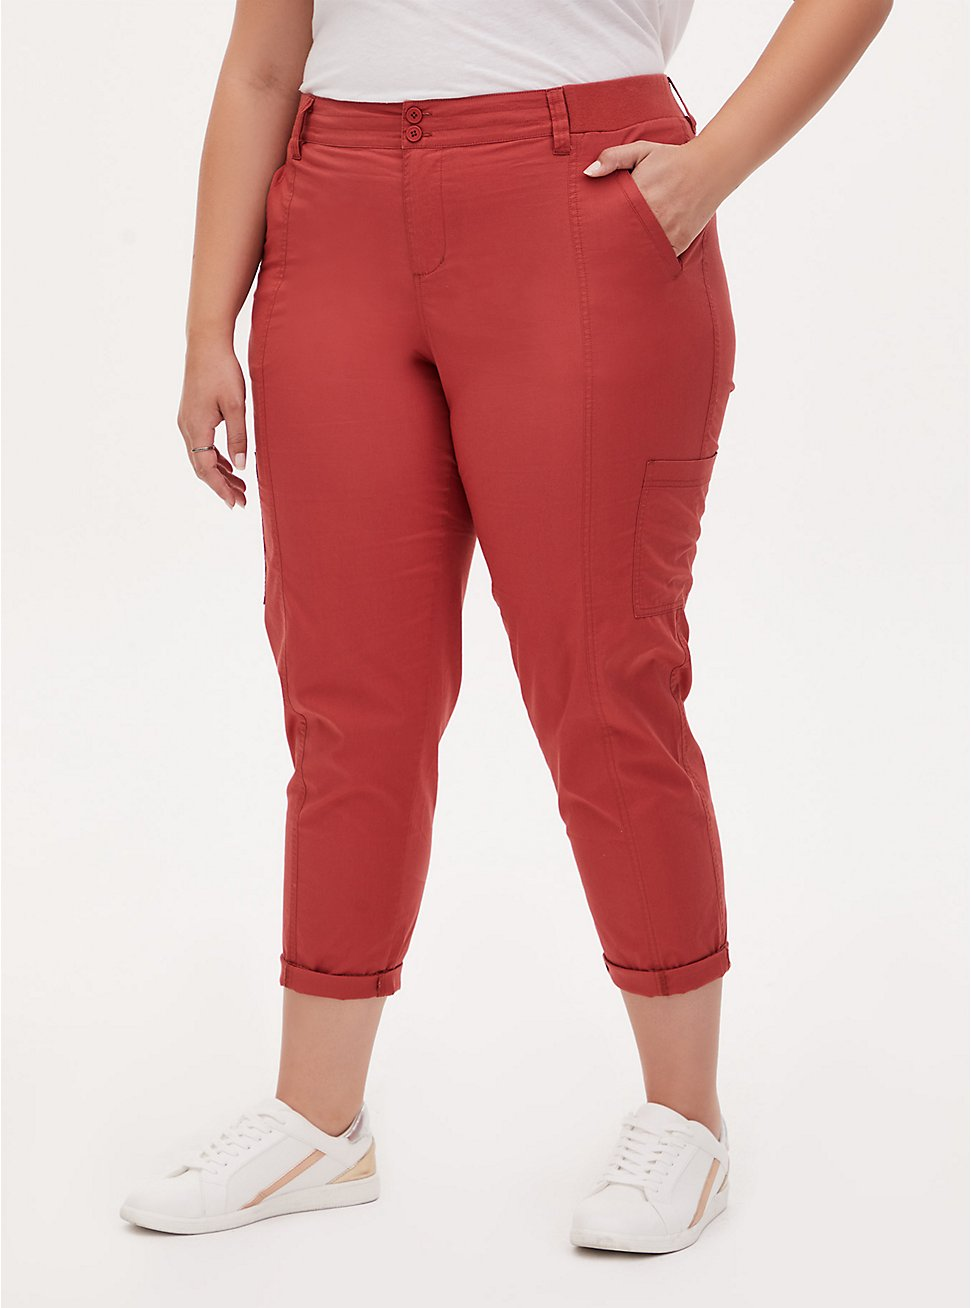 Plus Size Crop Utility Pant - Poplin Red Terracotta, RED, hi-res